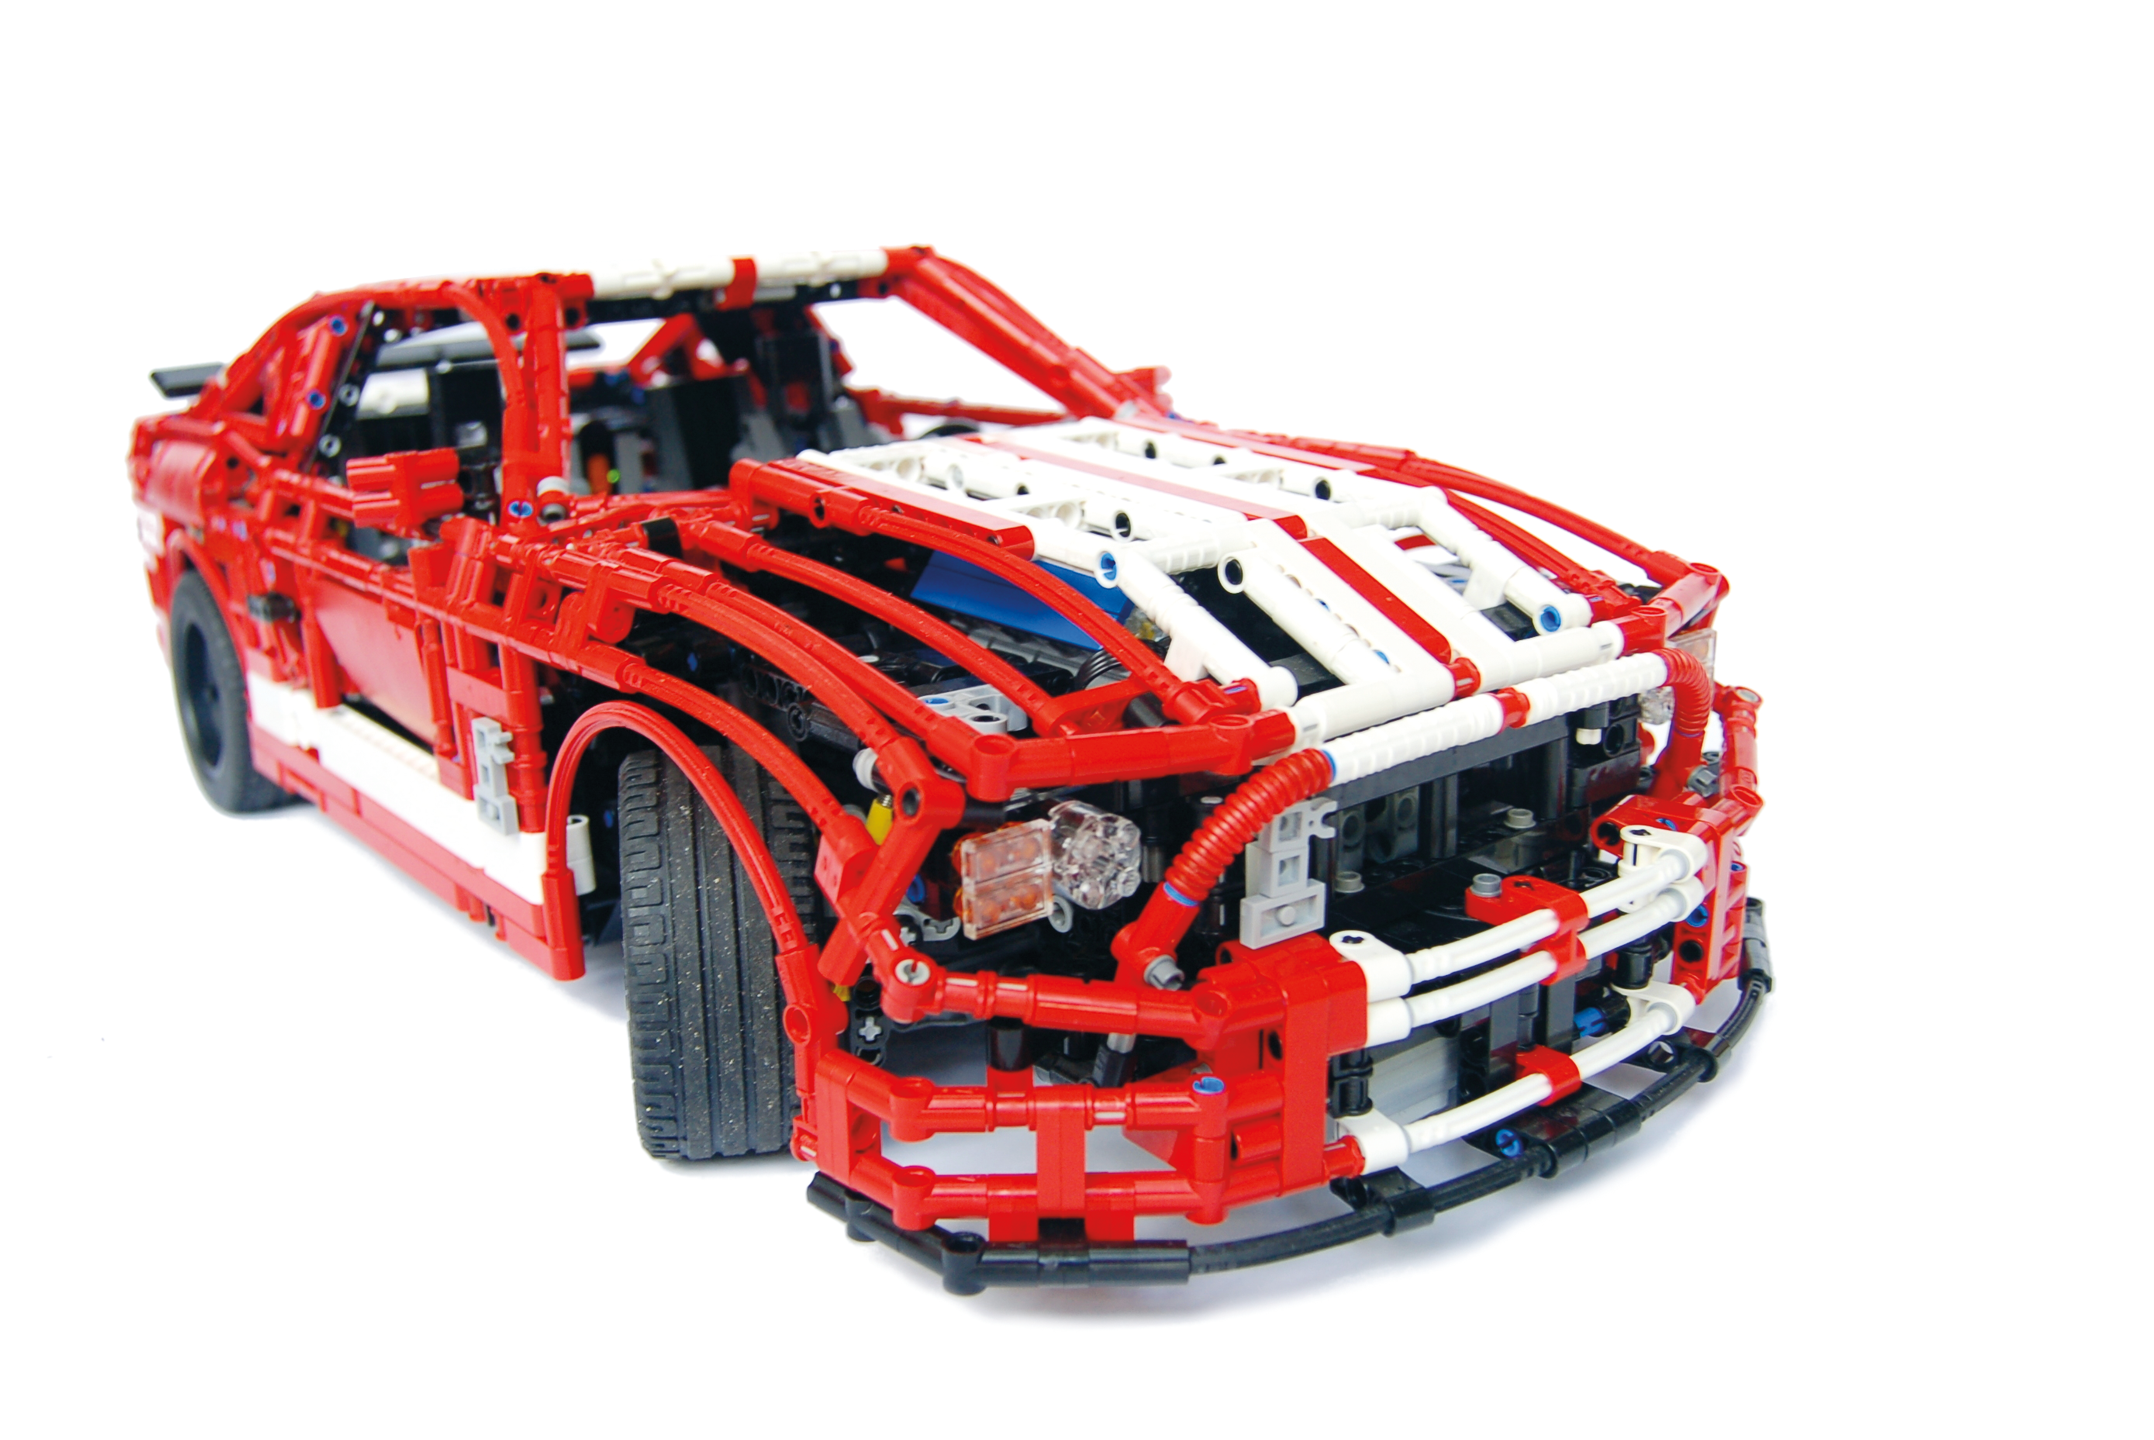 Shelby Ford Trucks >> Incredible LEGO Technic: Cars, Trucks, Robots & More!: Pawel Sariel Kmiec: 8601410731151: Books ...